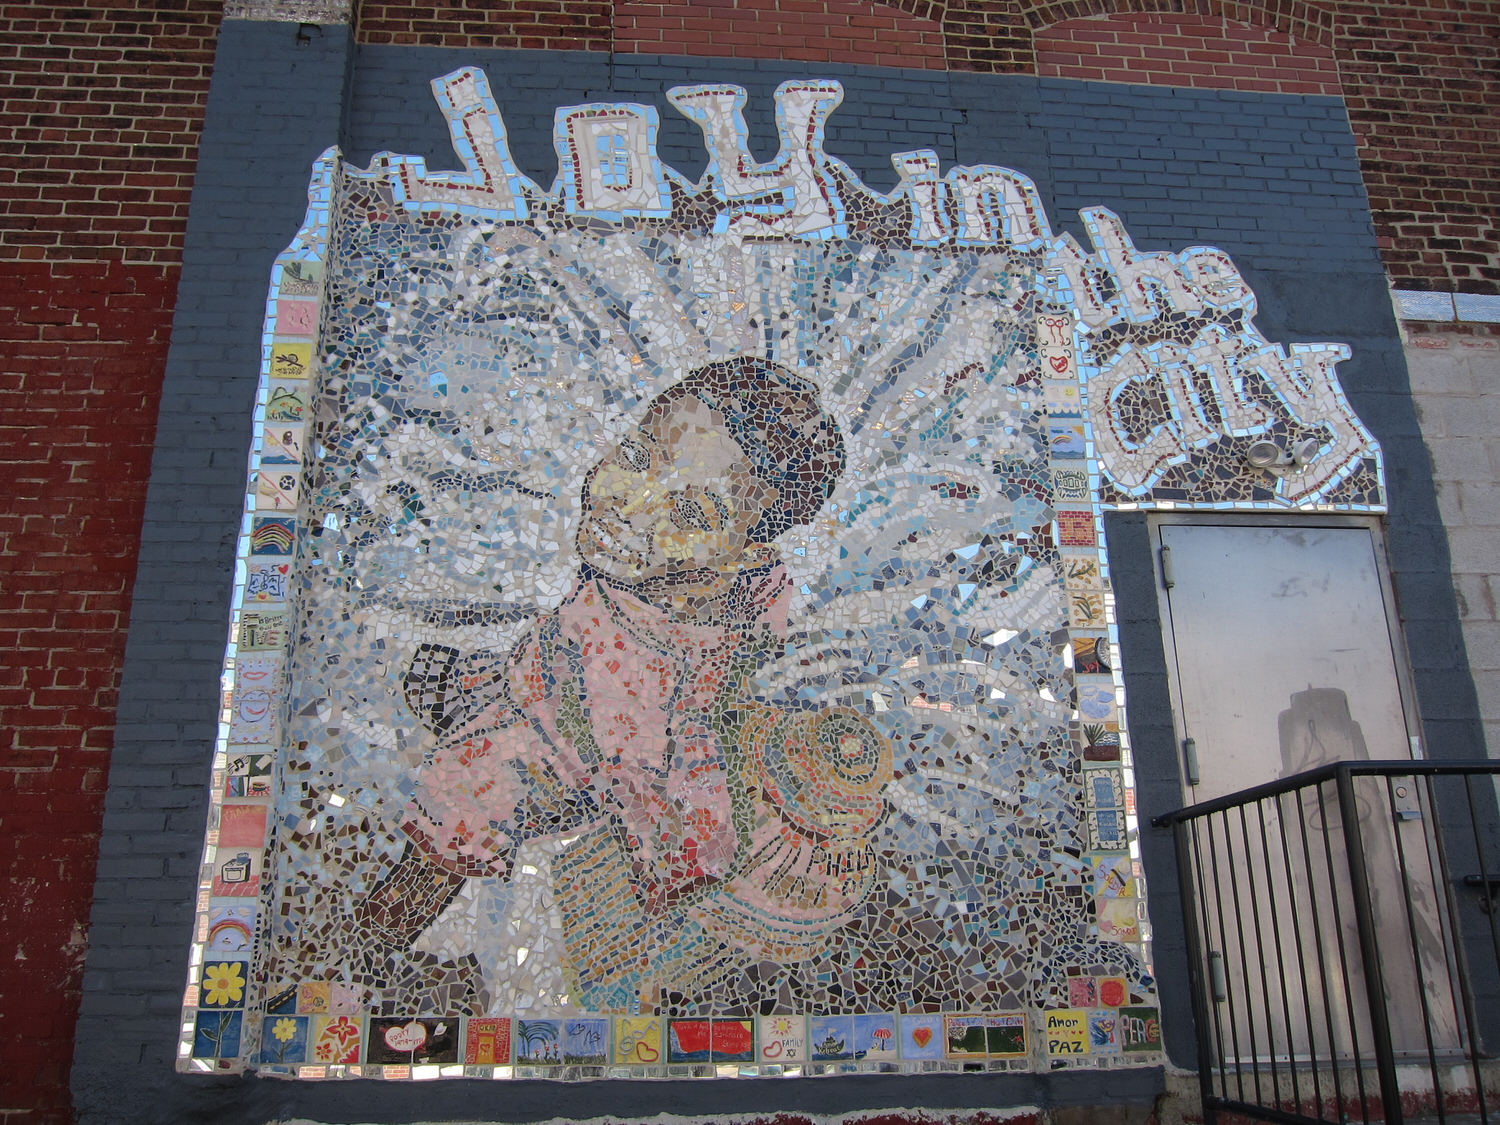 Final Image: Joy in the City Mosaic